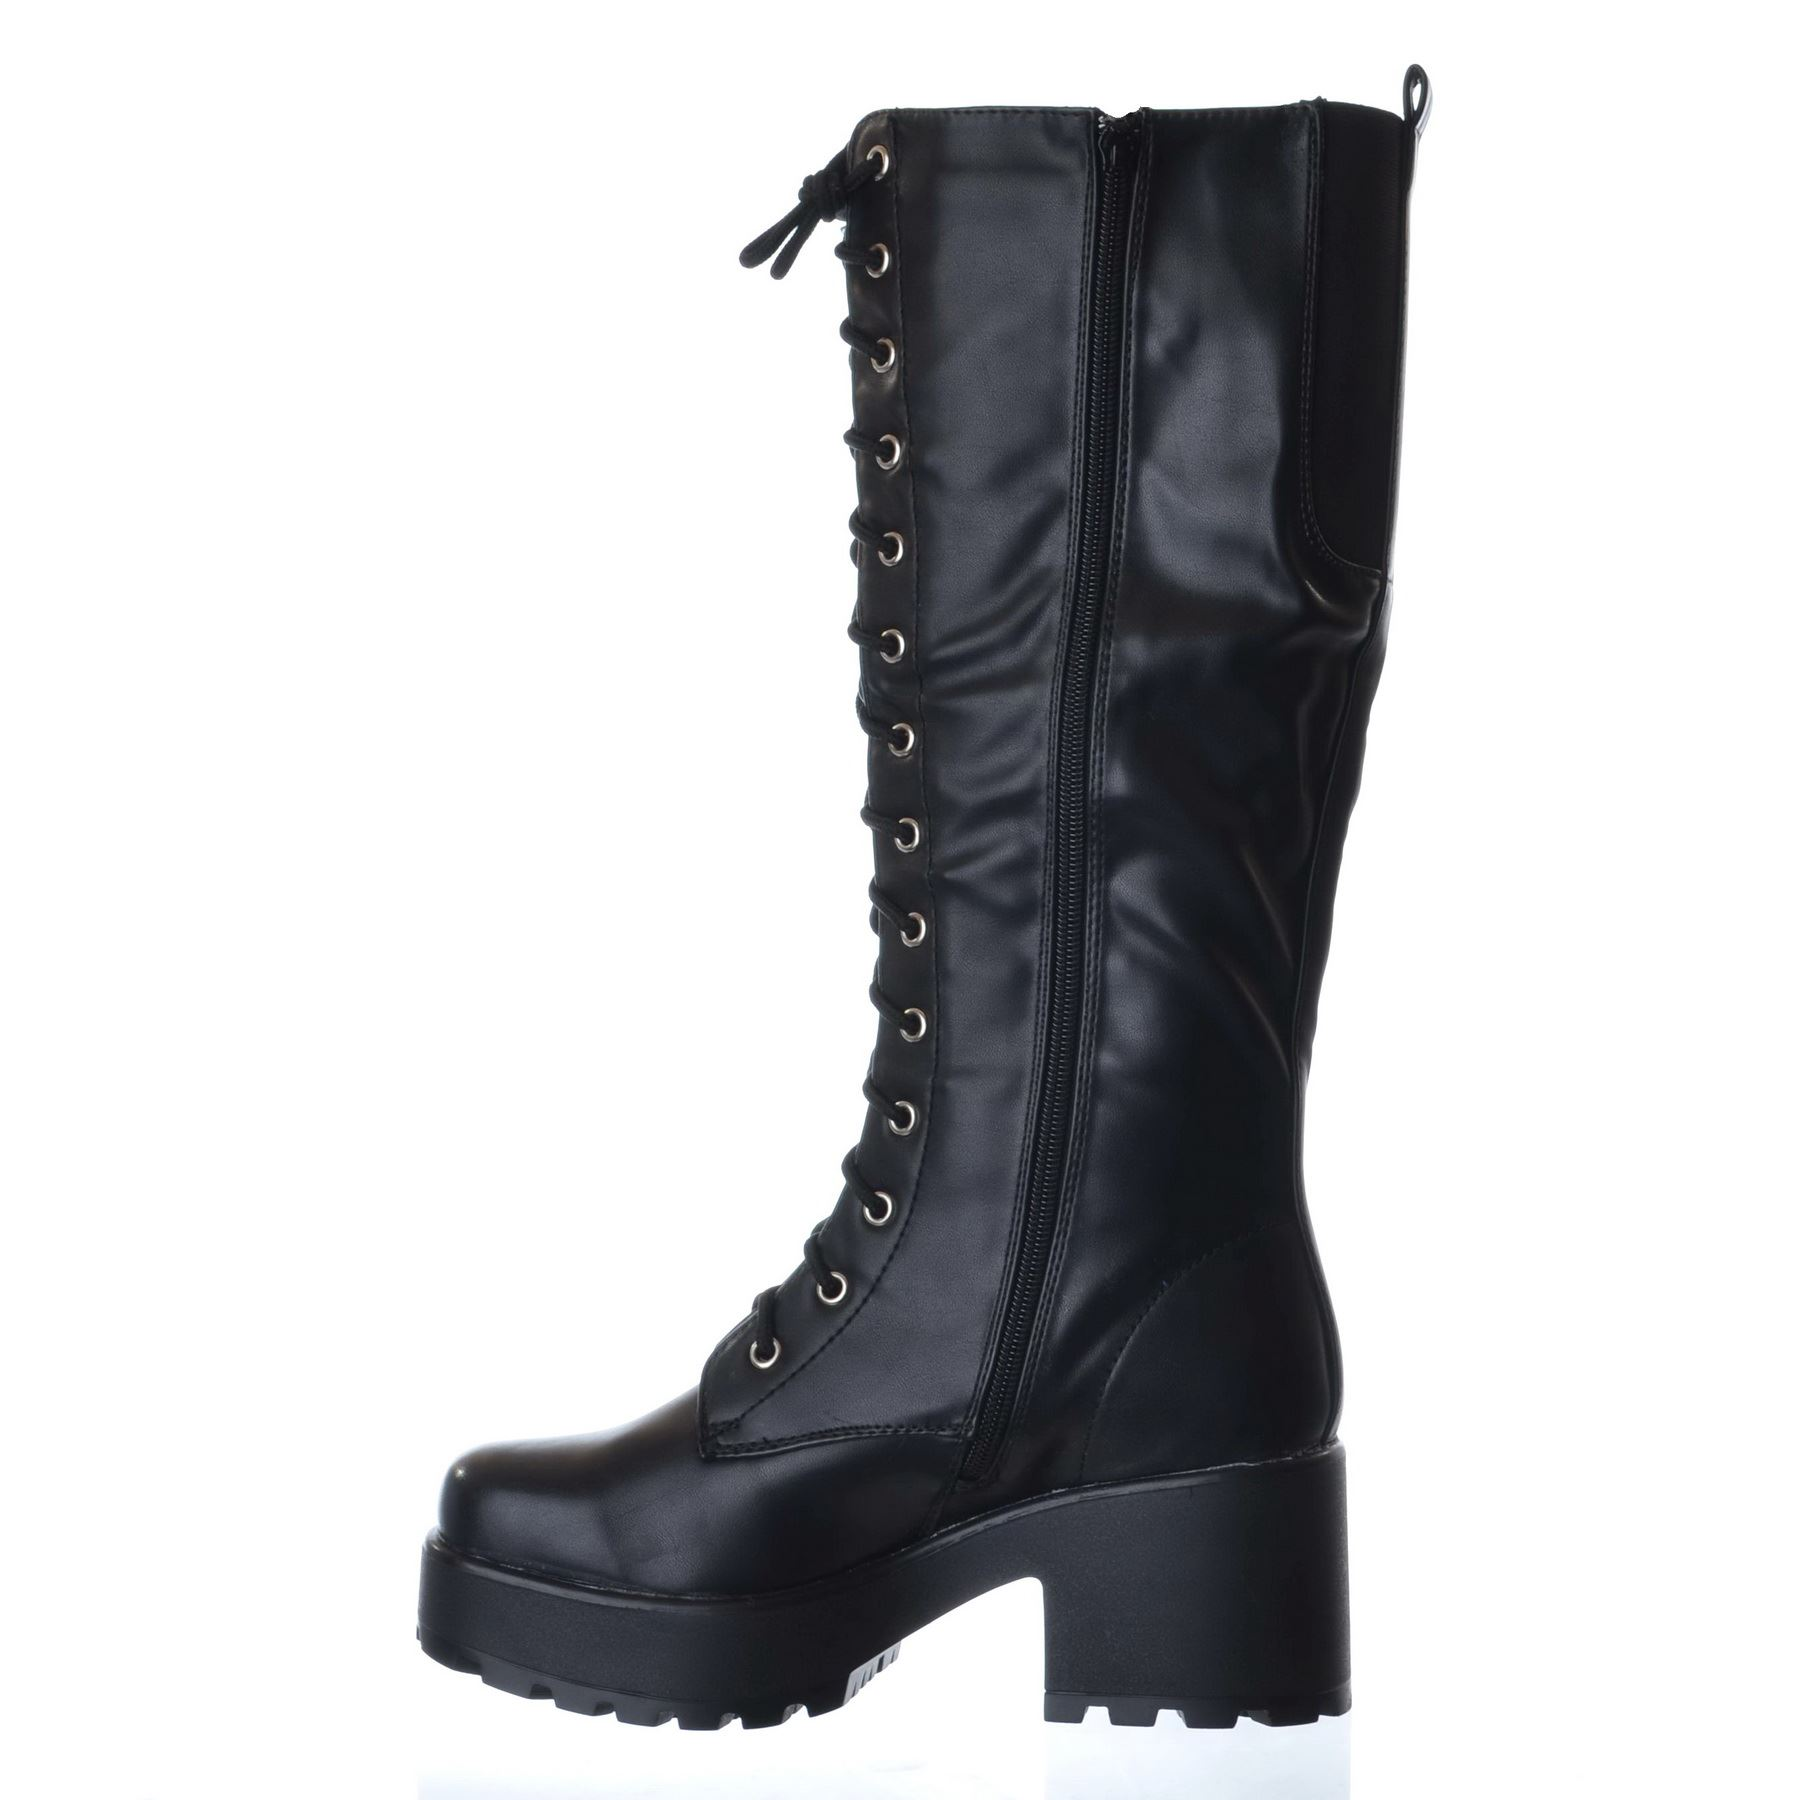 NEW-LADIES-WOMENS-KNEE-HIGH-CHUNKY-PLATFORM-MID-BLOCK-HEEL-LACE-UP-ZIP-UP-BOOTS thumbnail 5